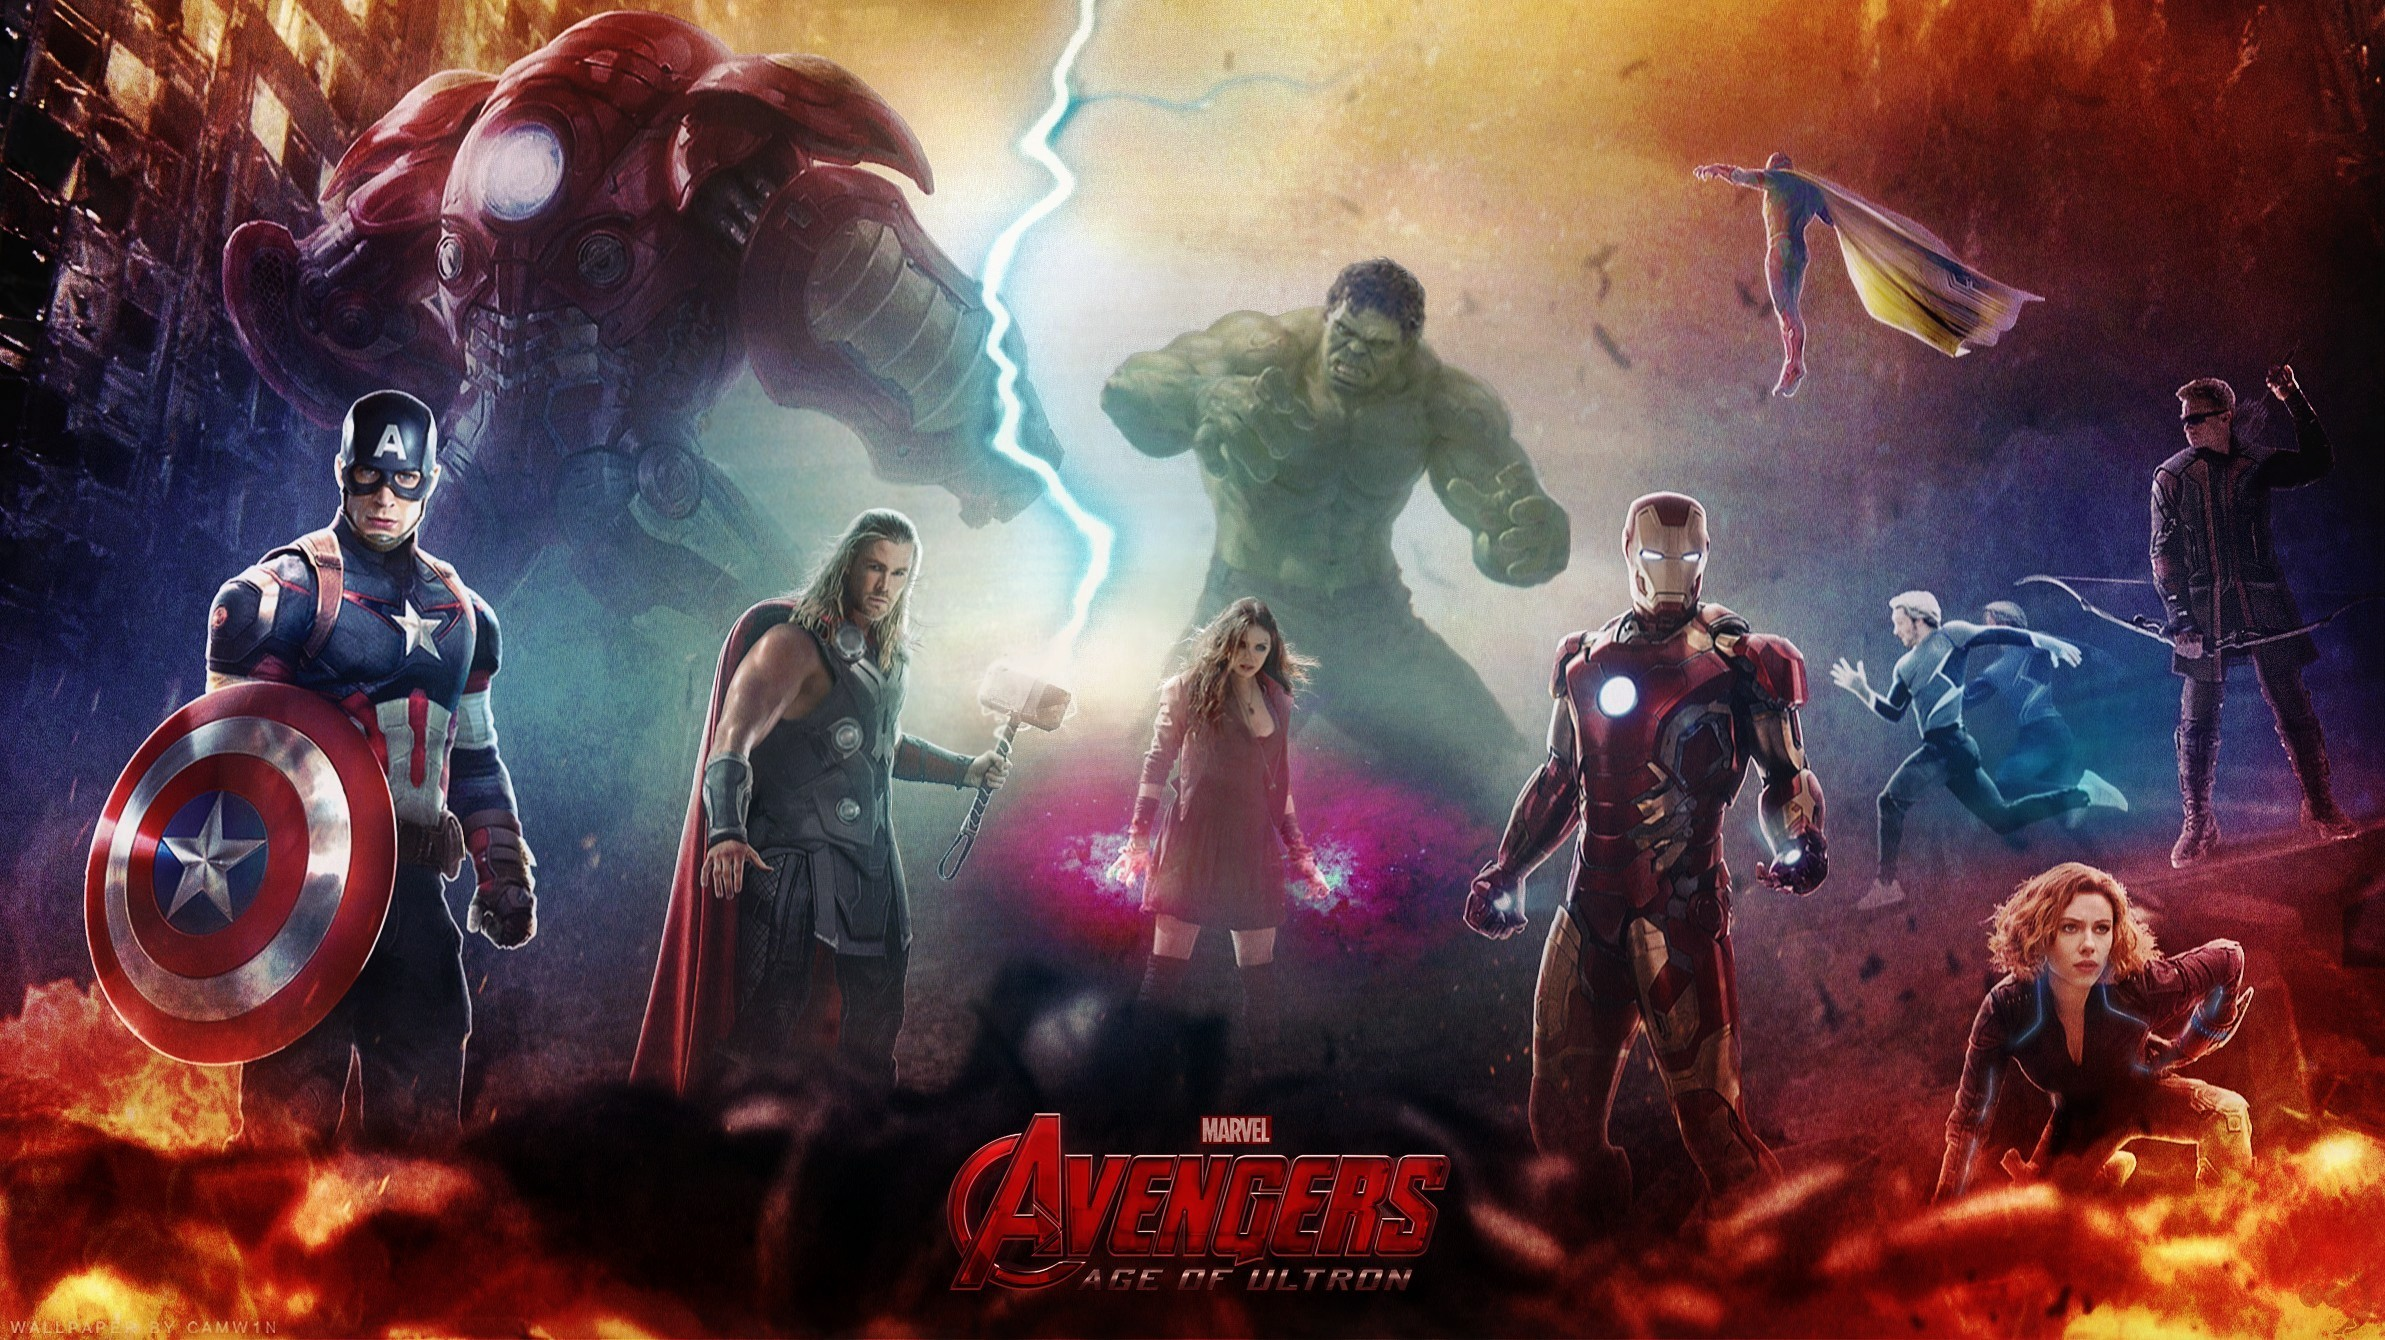 avengers_age_of_ultron_wallpaper_by_camw1n-d80ja2f.jpg